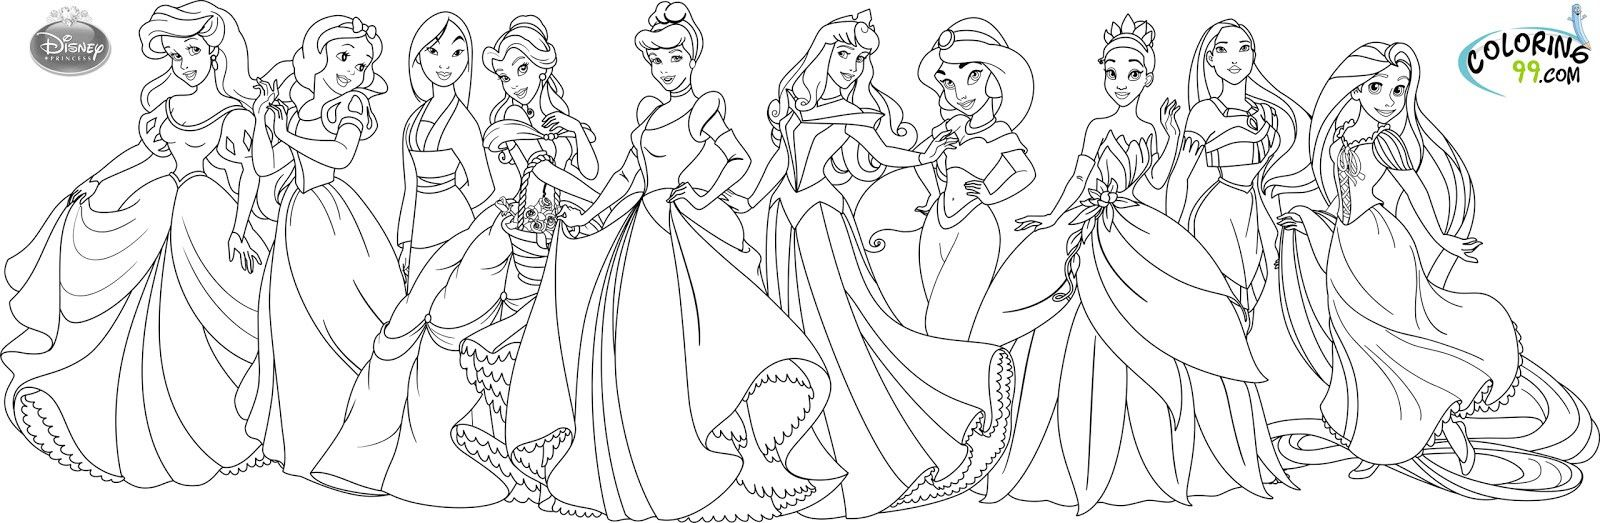 - Disney Princess Hard Coloring Pages (With Images) Princess